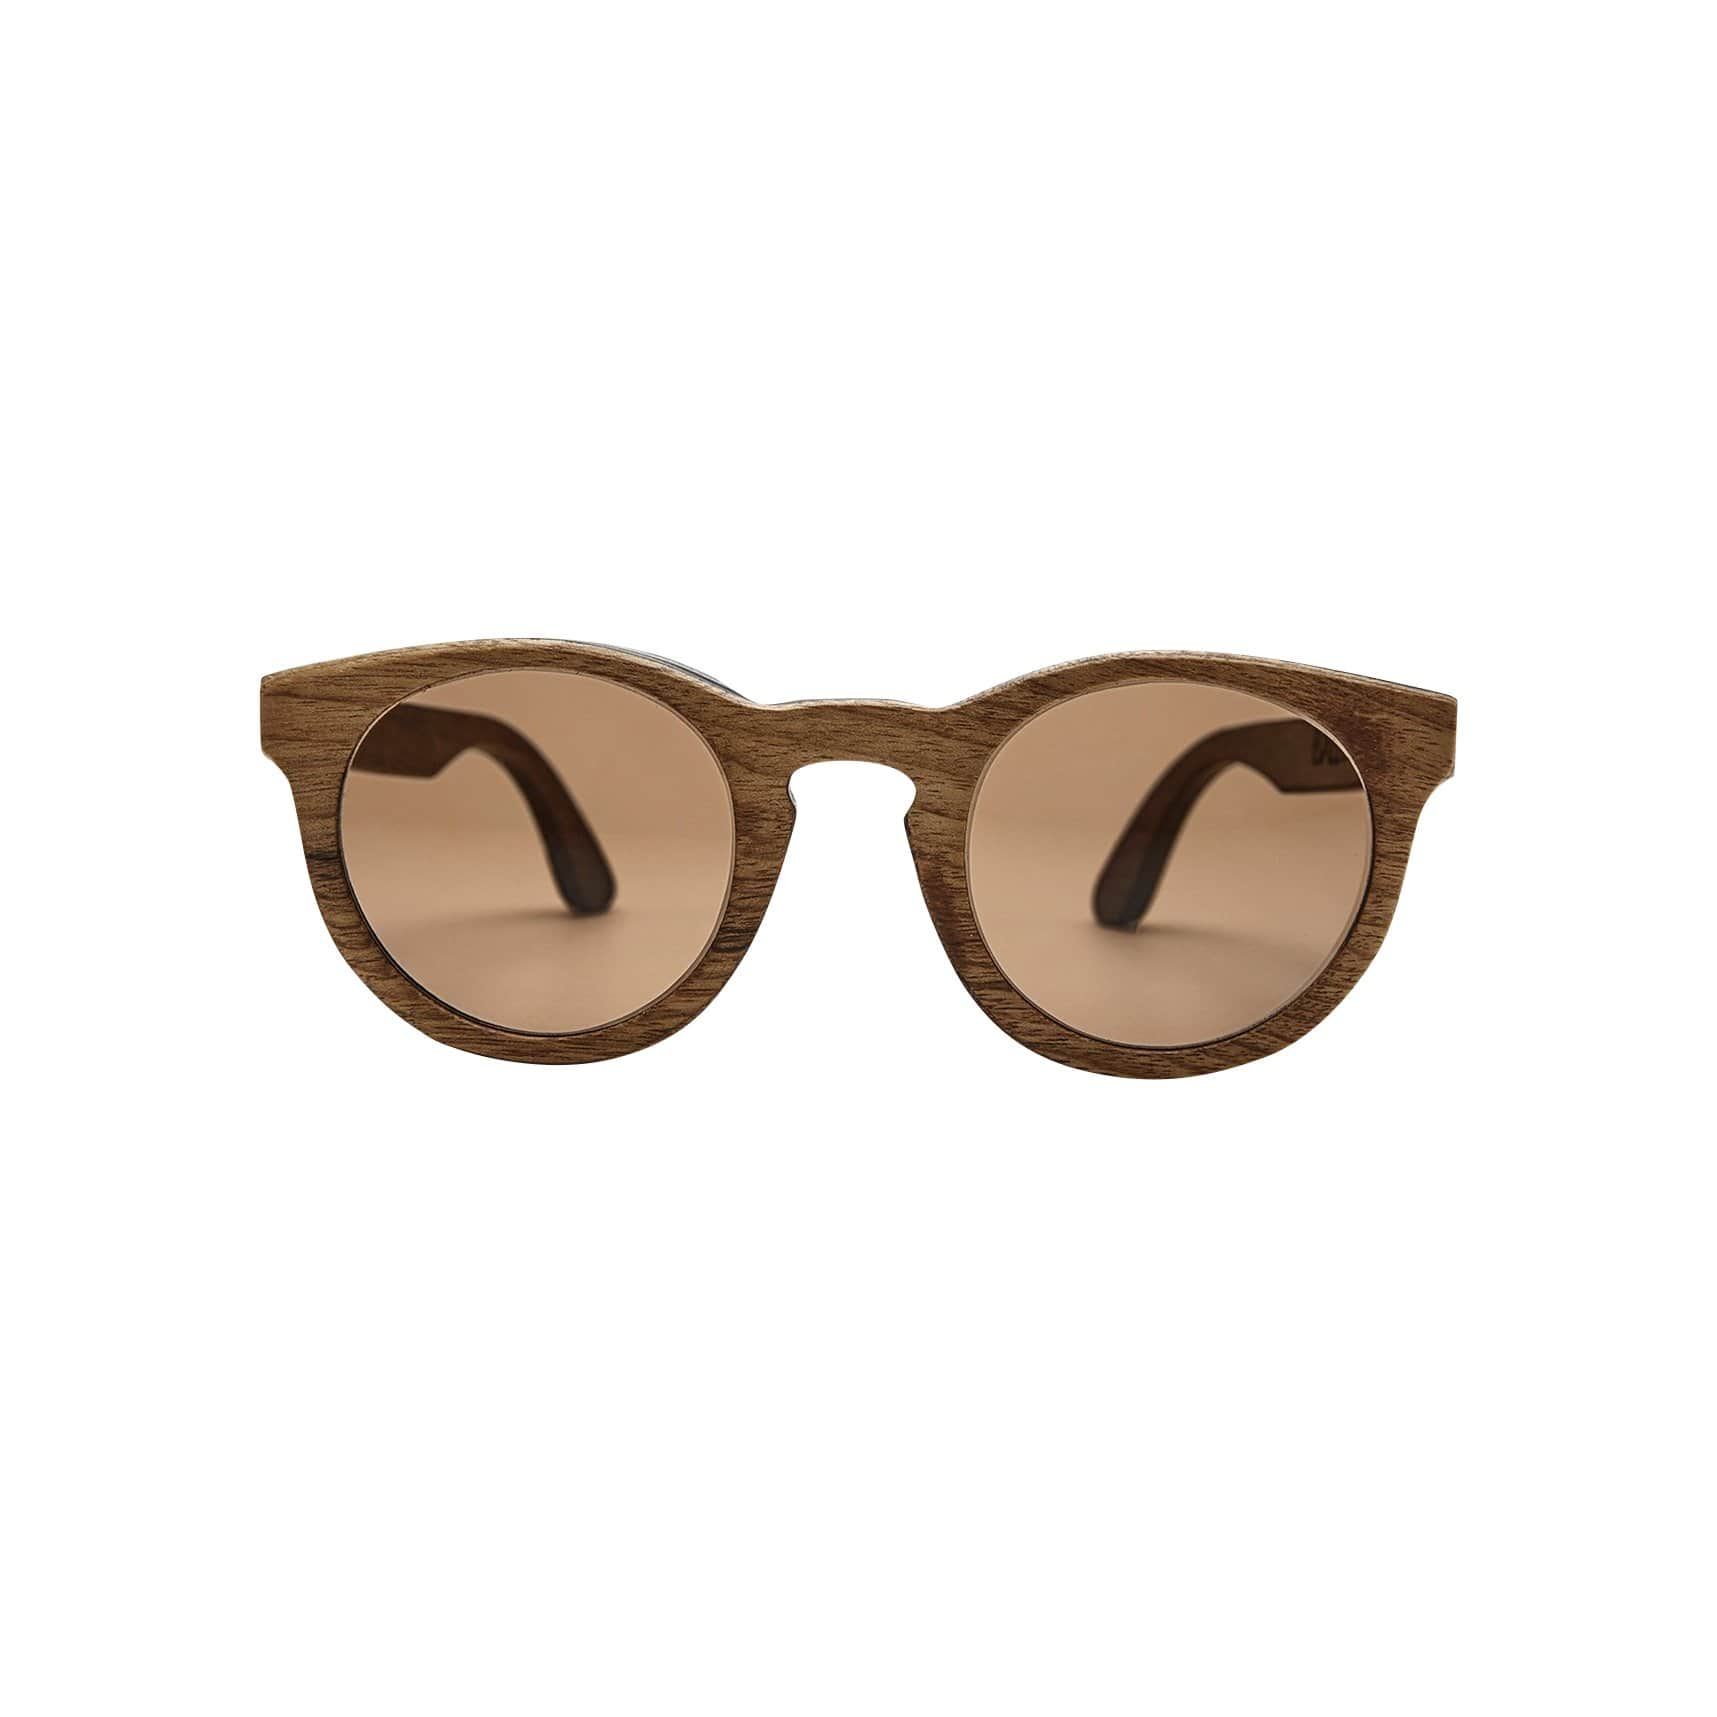 Ballo Sunglasses + Eyewear Gallo with Imbuia Wood